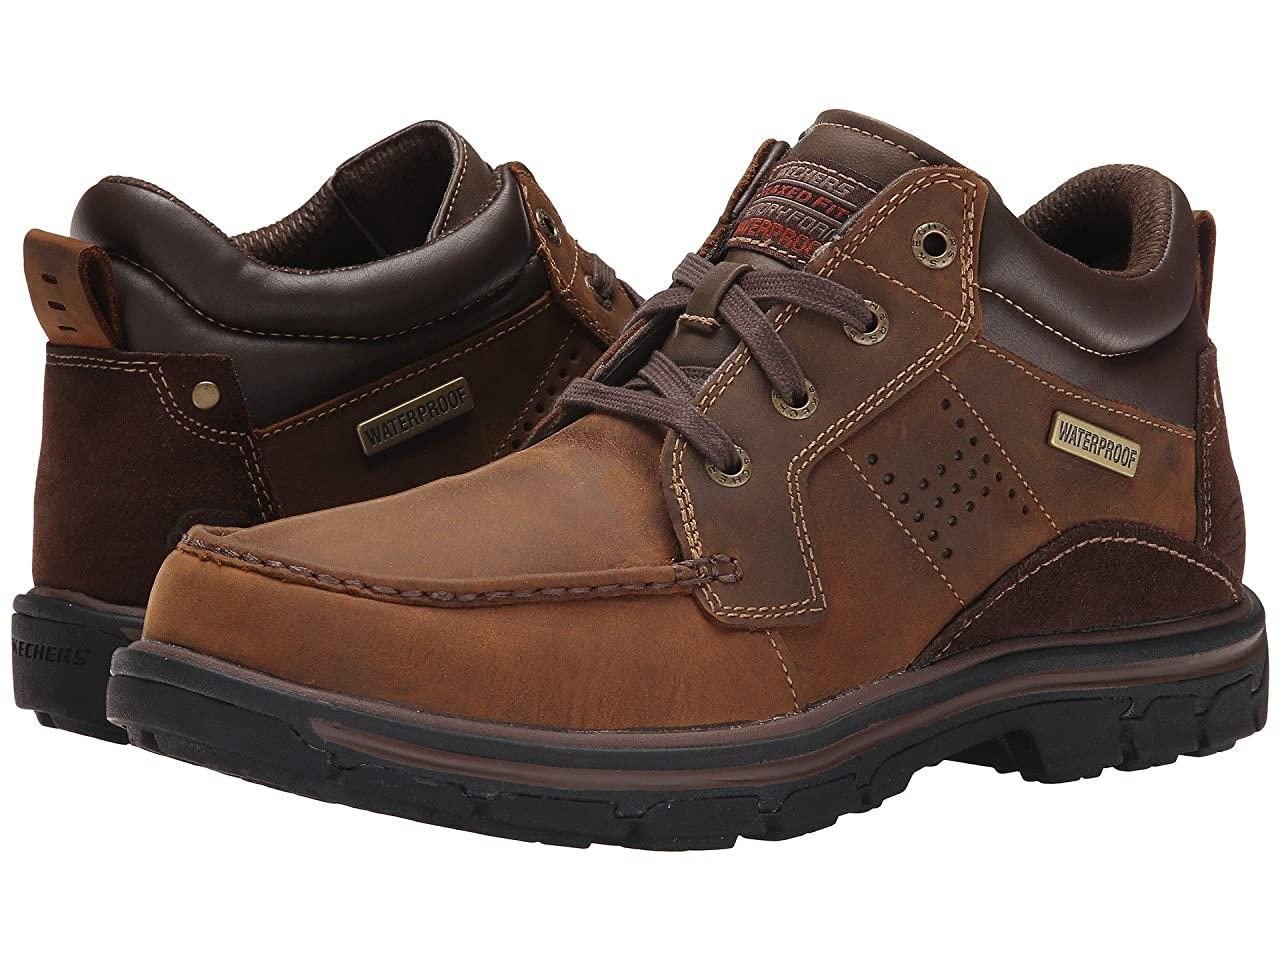 Ботинки/Сапоги (Оригинал) SKECHERS Relaxed Fit Segment - Melego Dark Brown